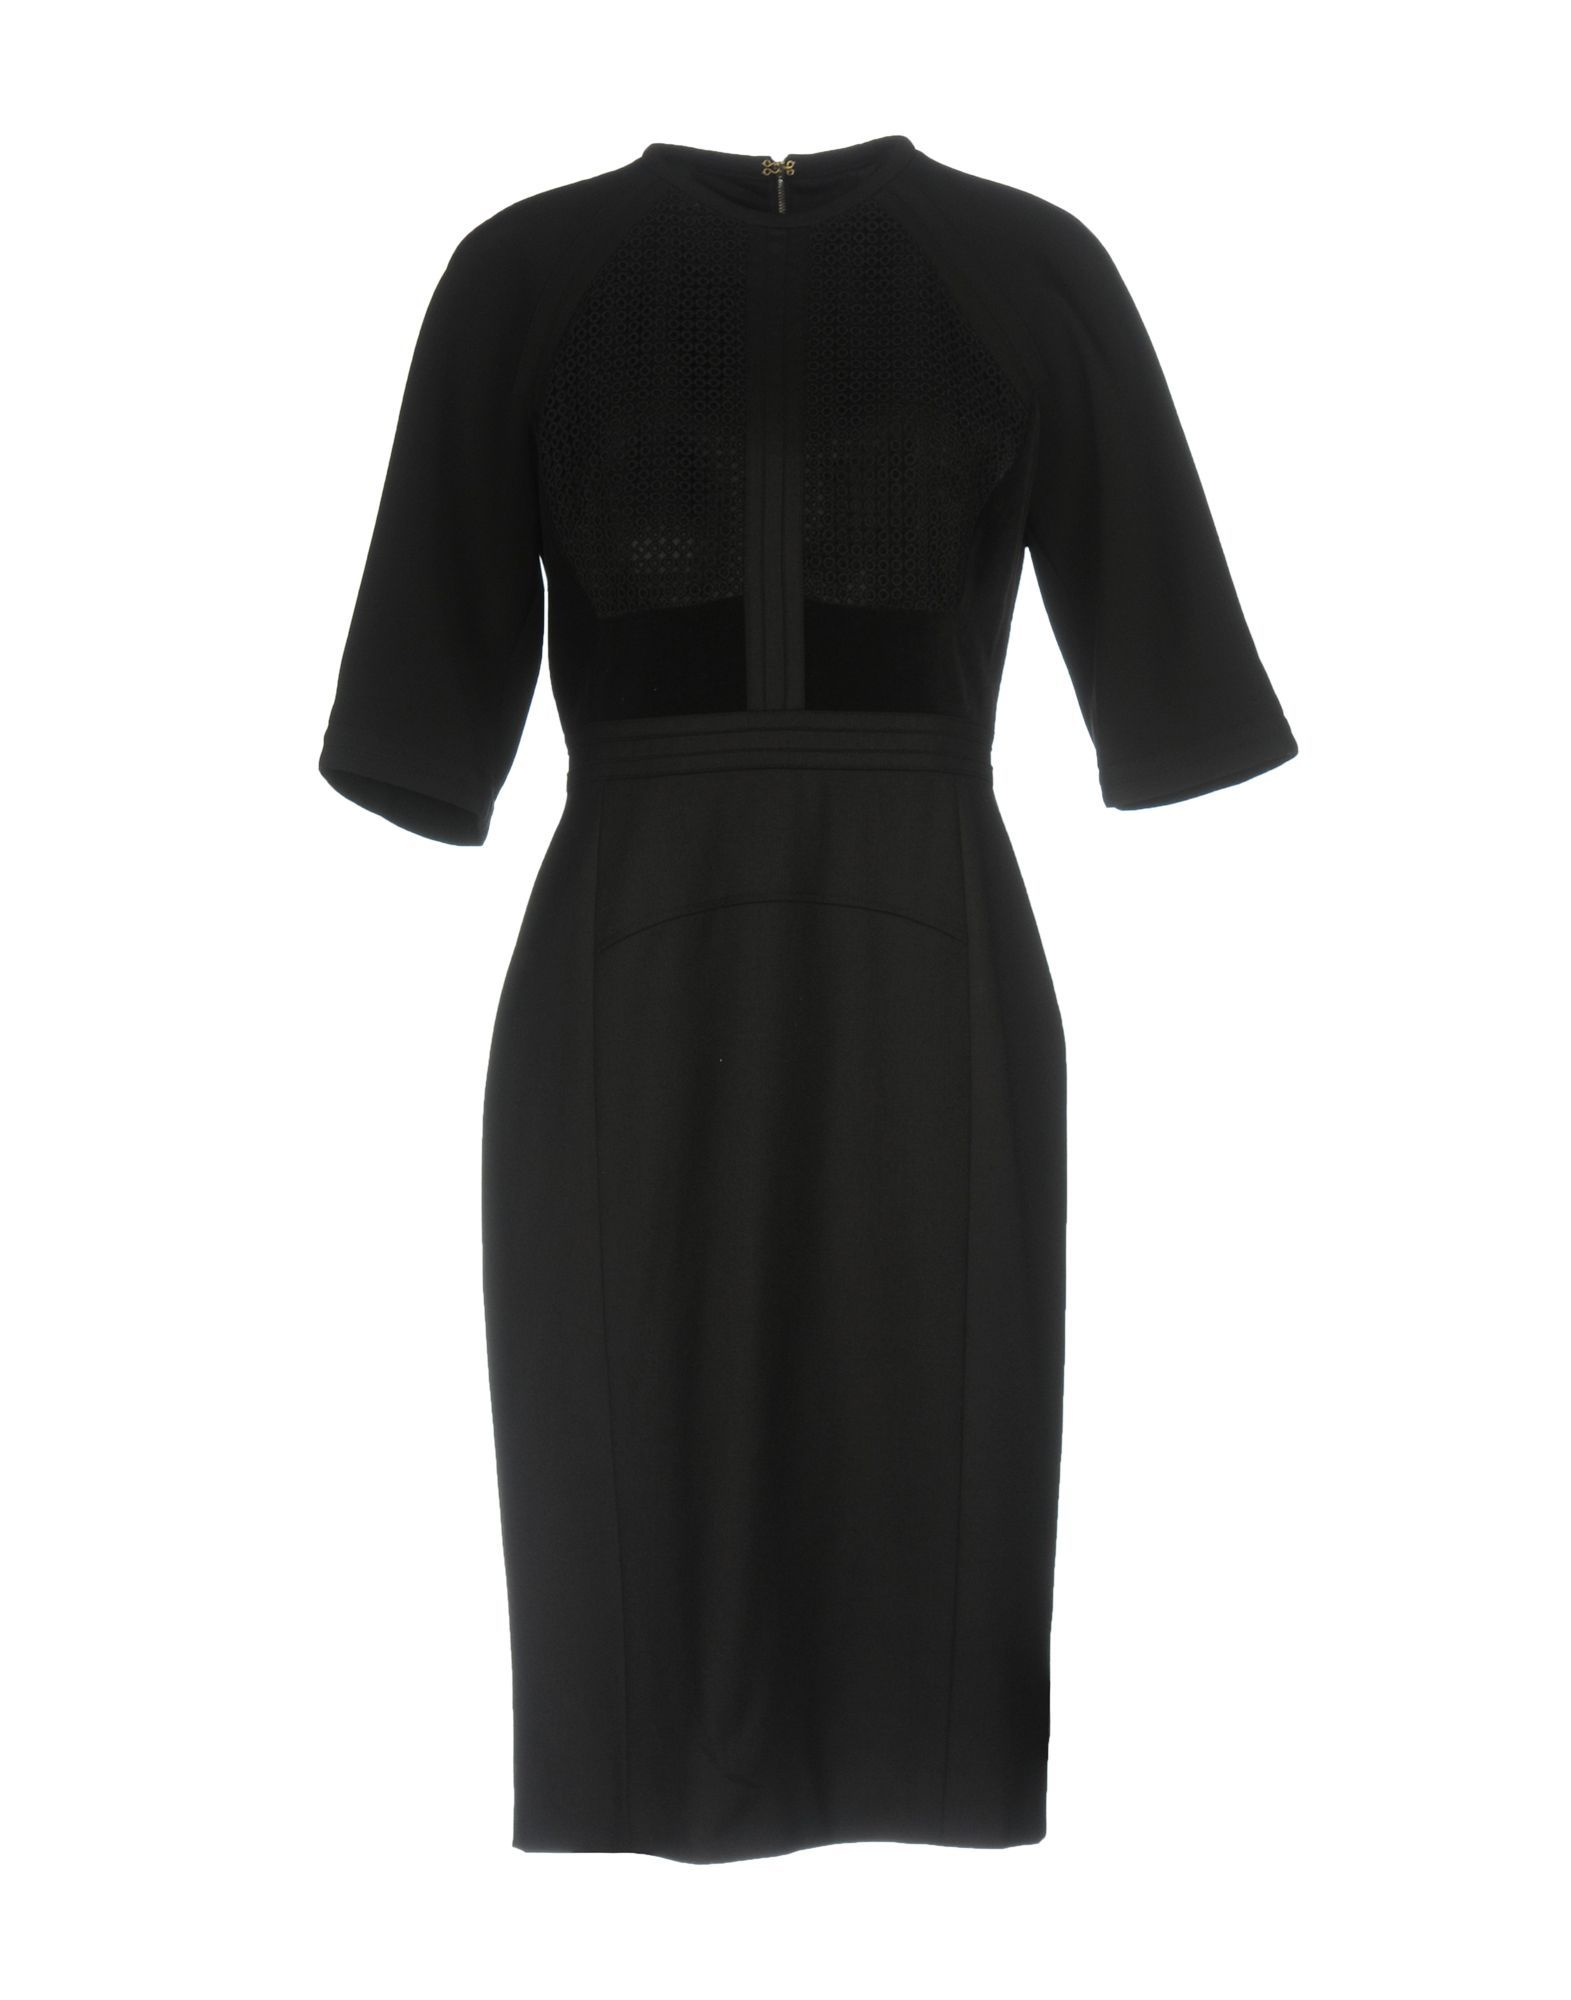 Elie Saab Black Virgin Wool Dress With Three Quarter Length Sleeves